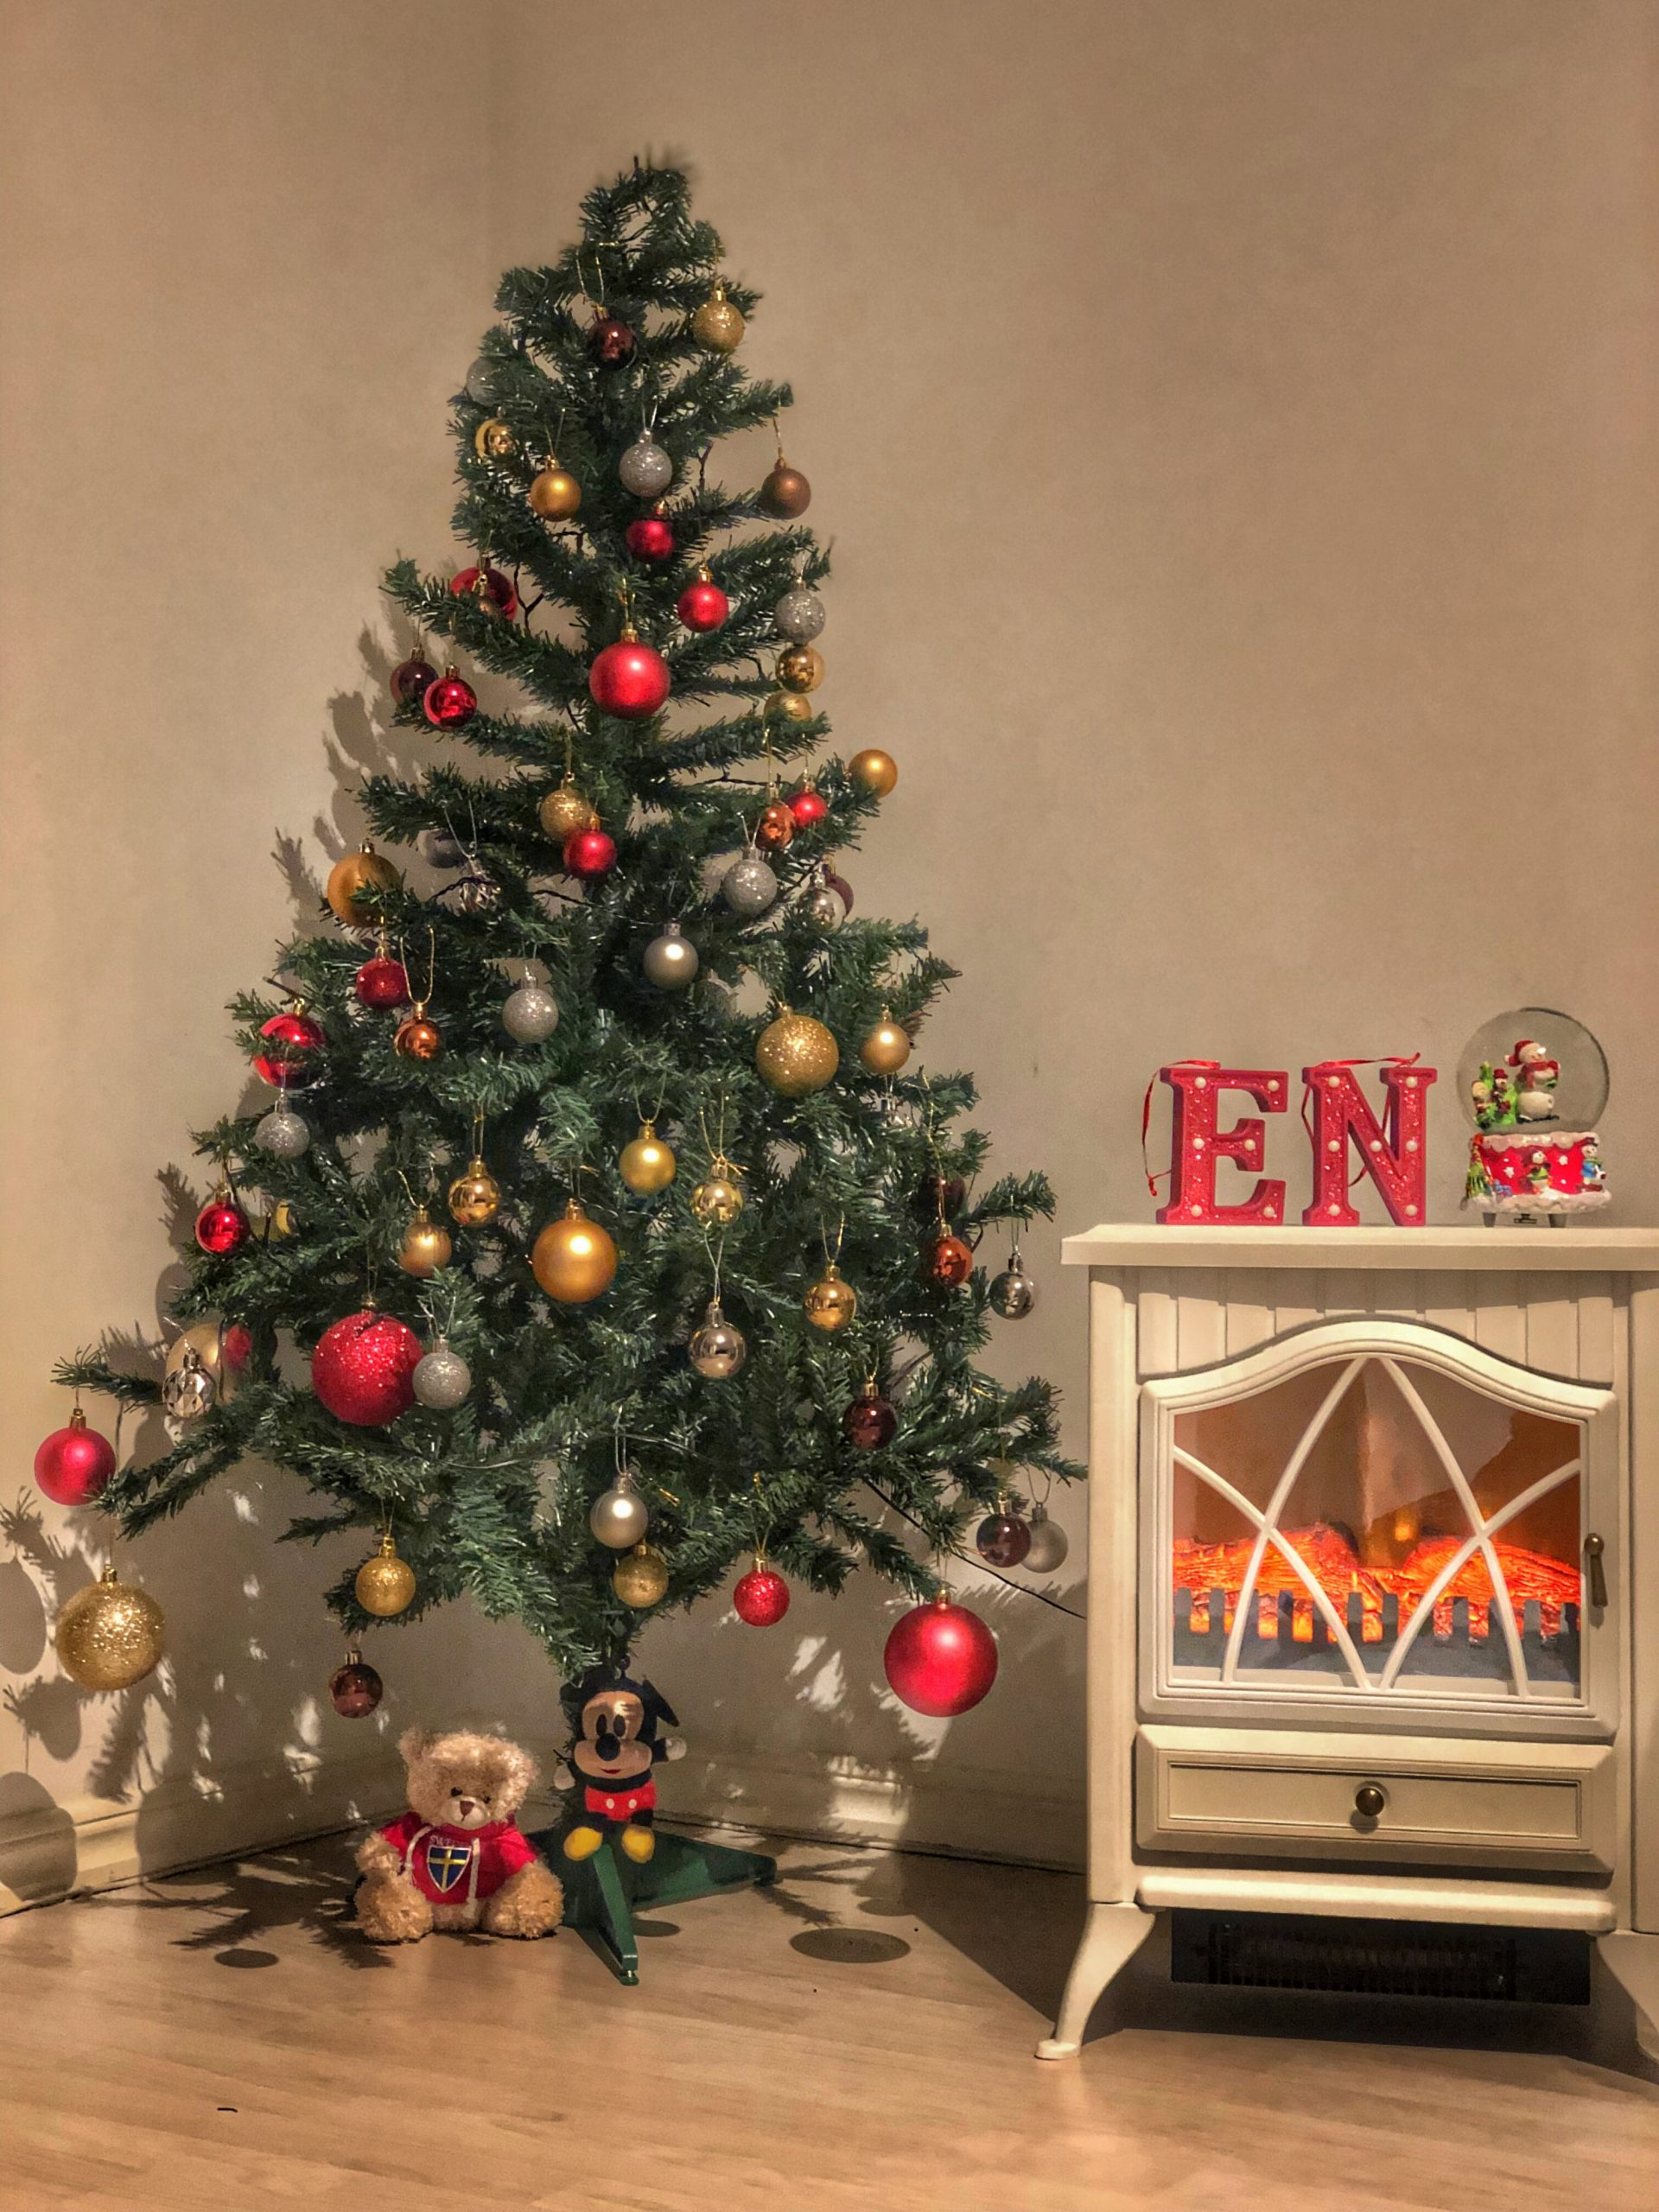 A Christmas tree decked with ornaments placed beside a table.